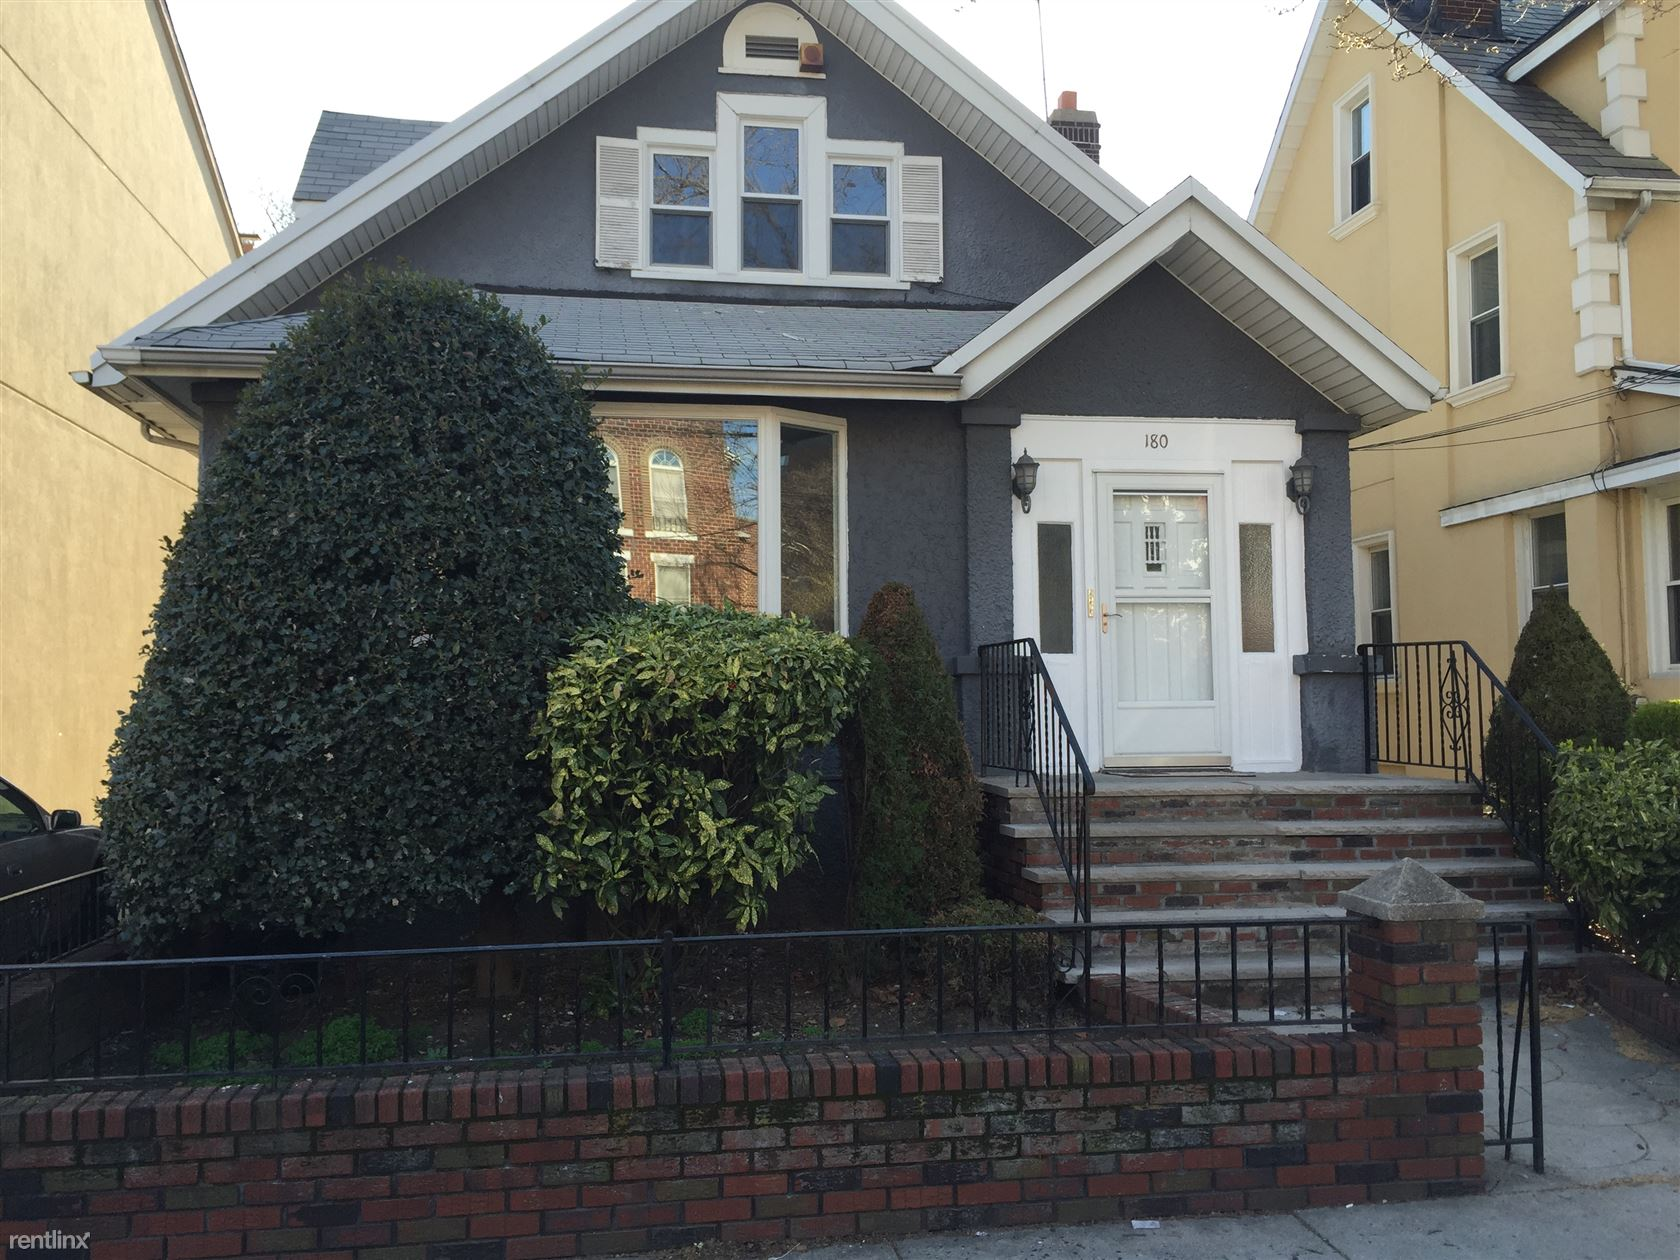 180 Marine Avenue, BAY RIDGE, NY - $2,400